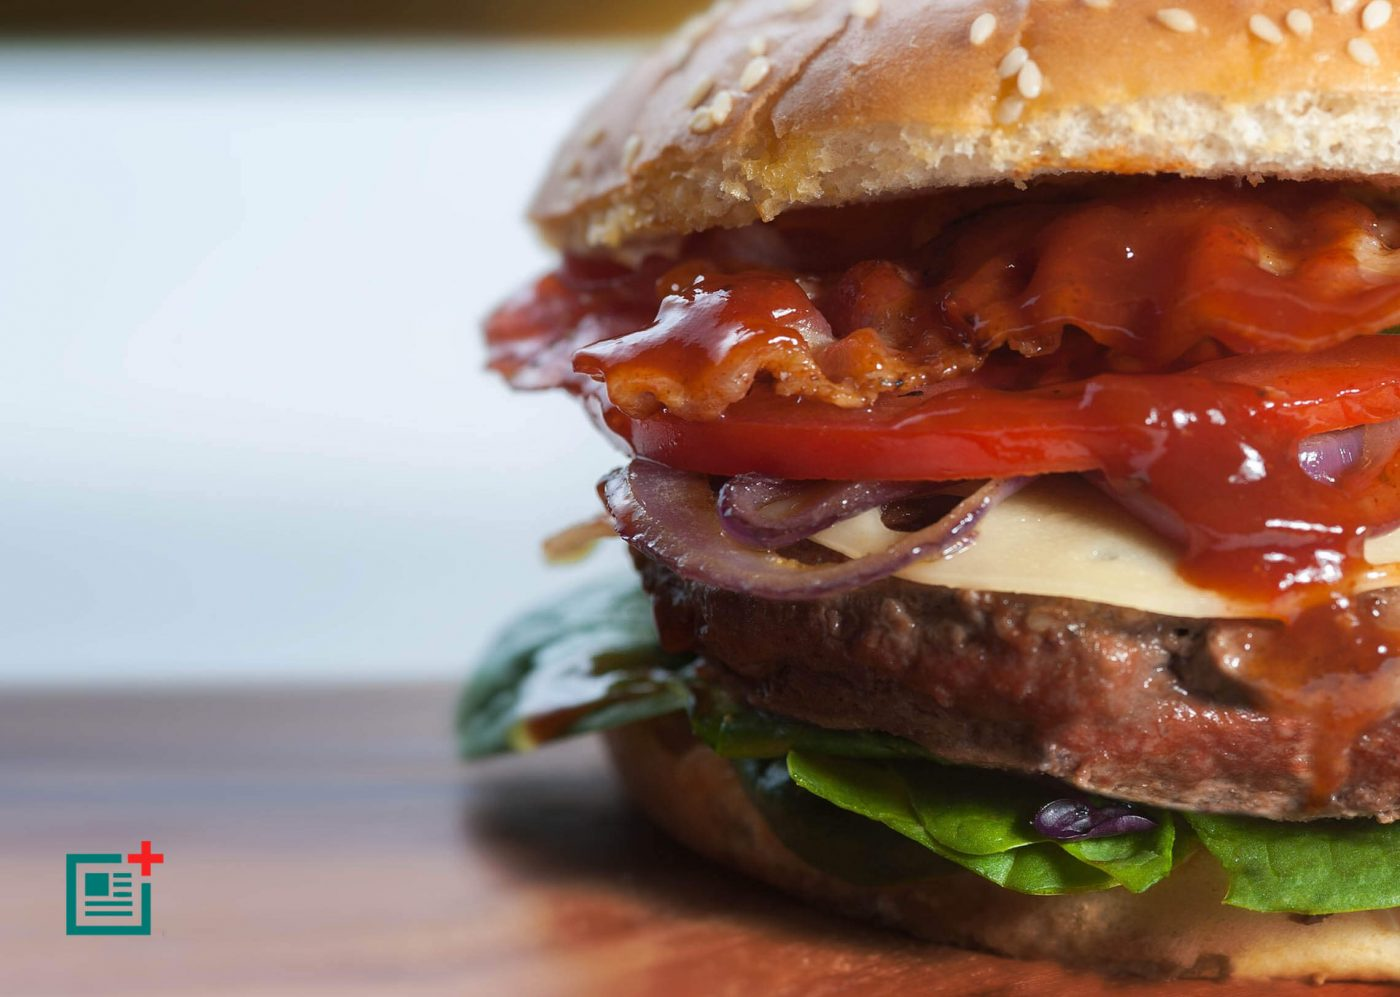 Calorie Labels On Fast Food Need A Different Approach